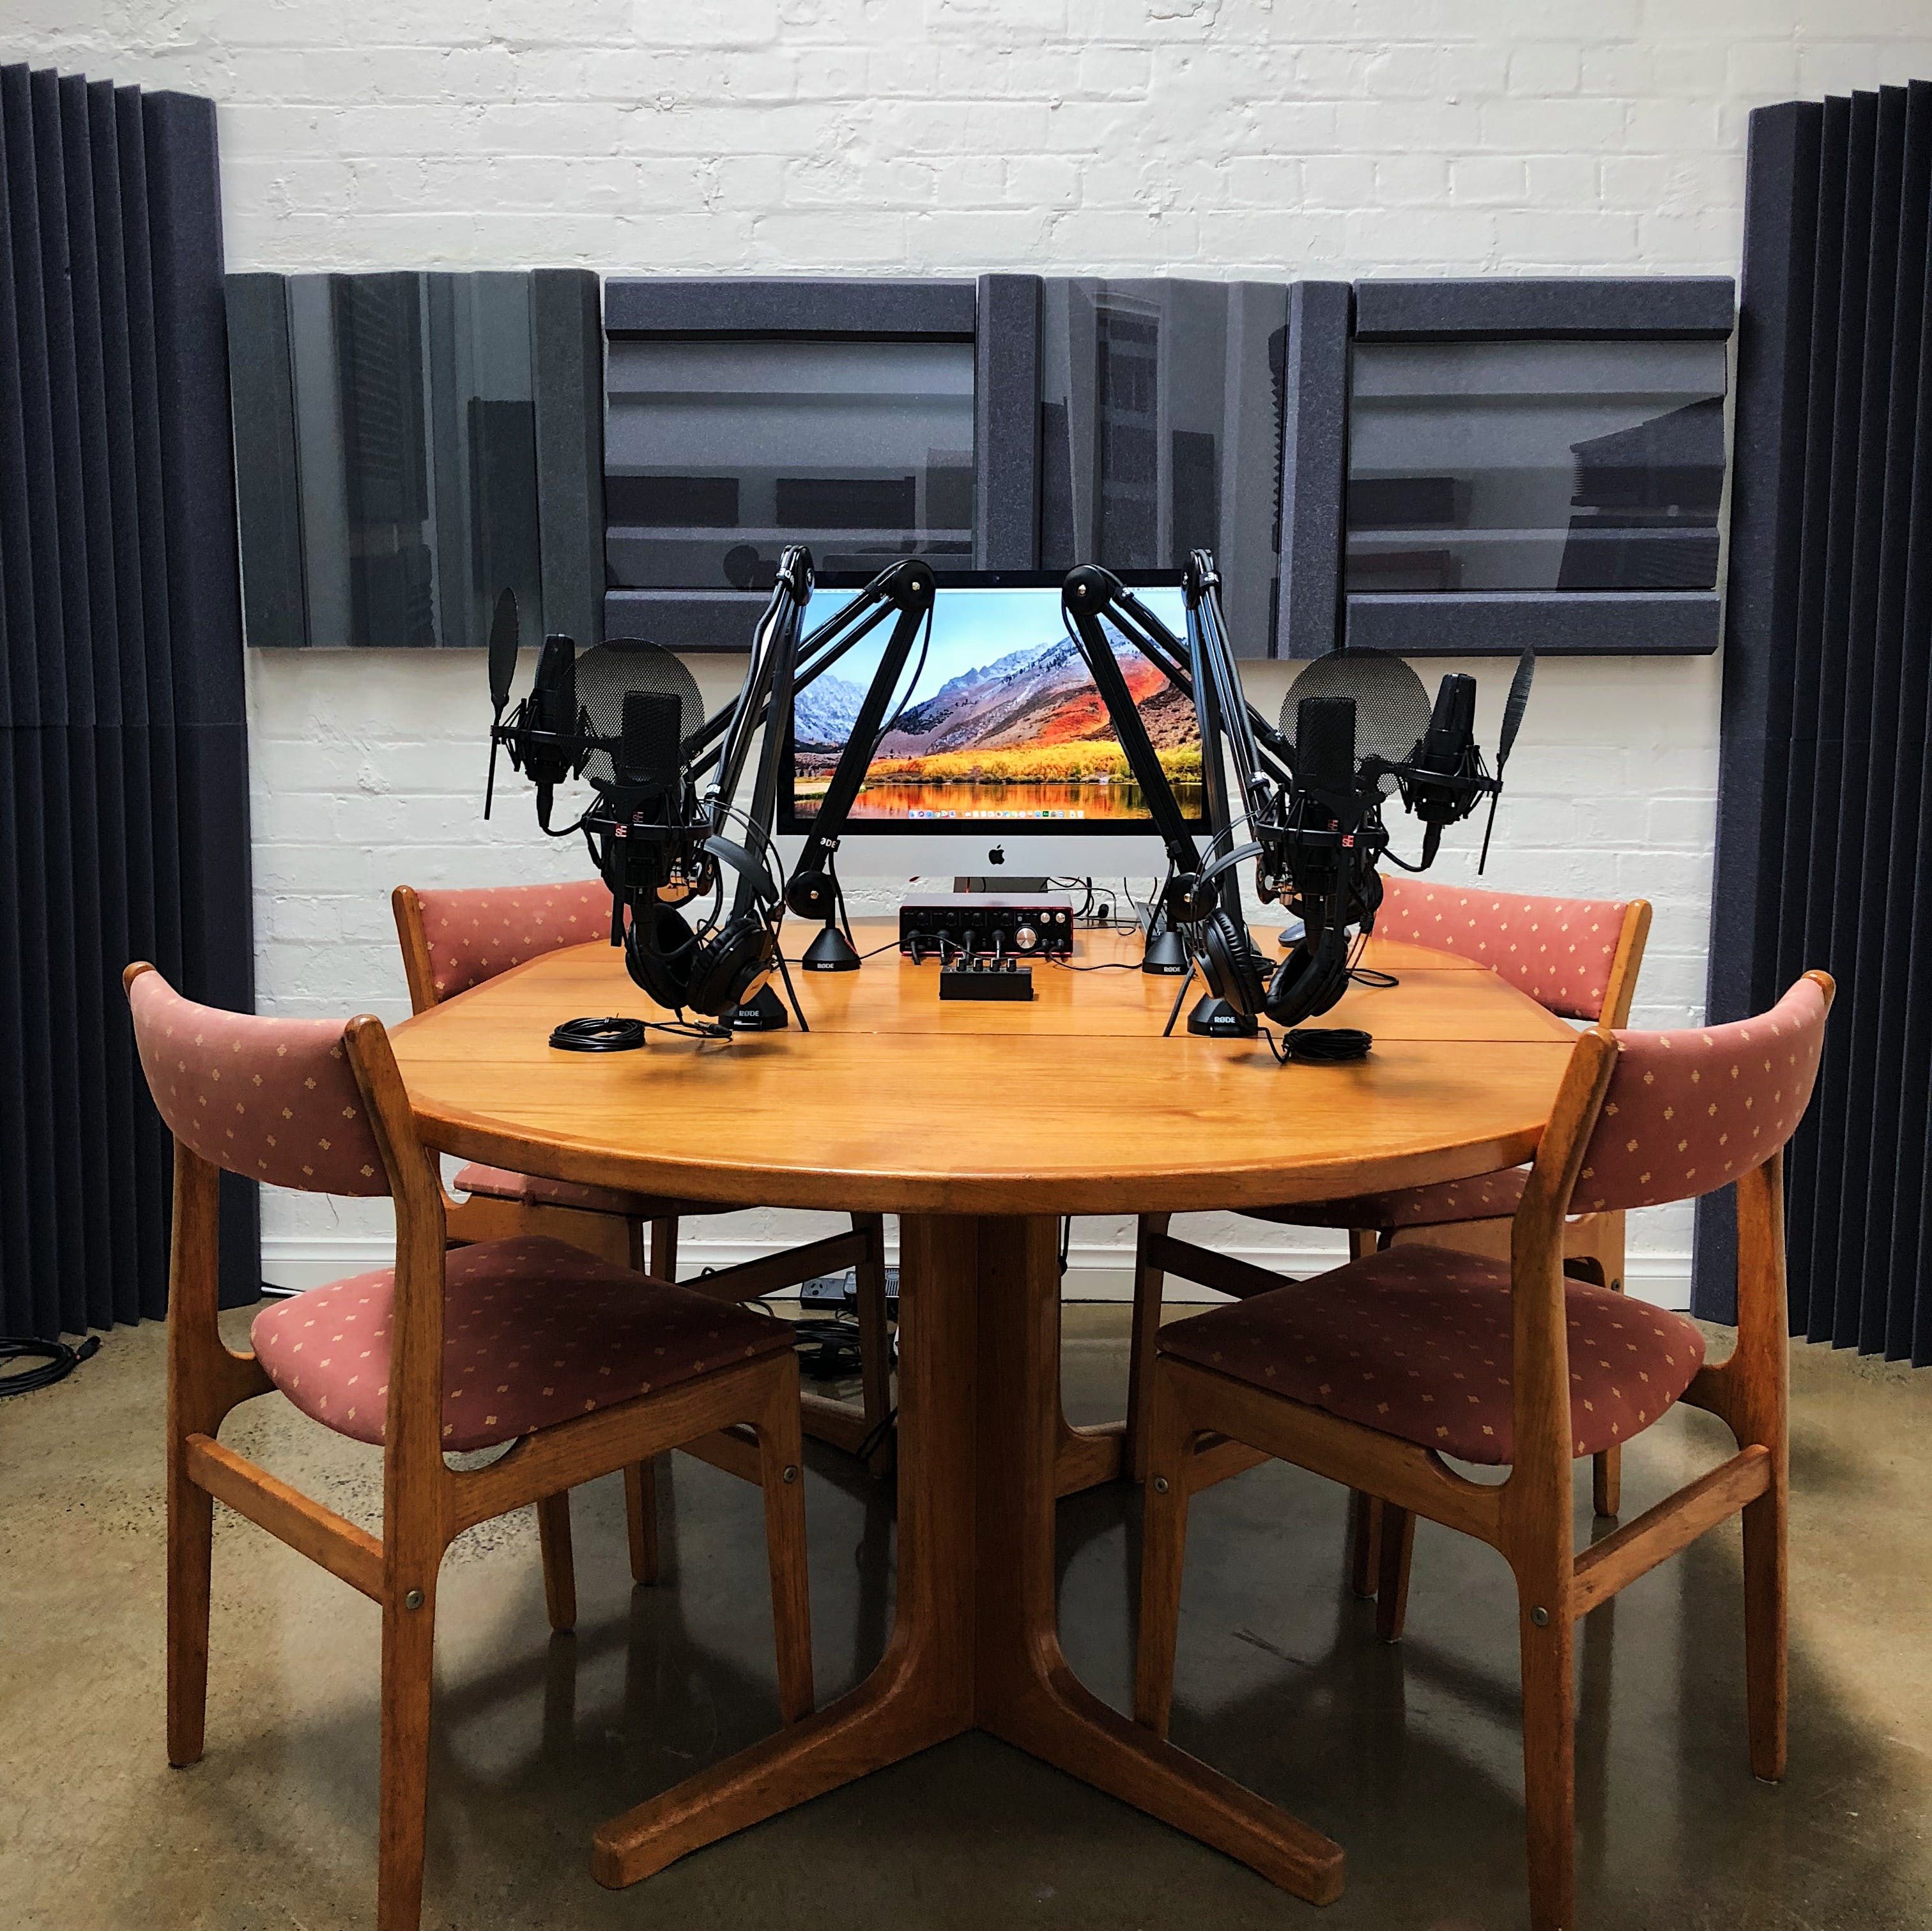 Podcast Studio, creative studio at Balloon Tree Productions, image 1